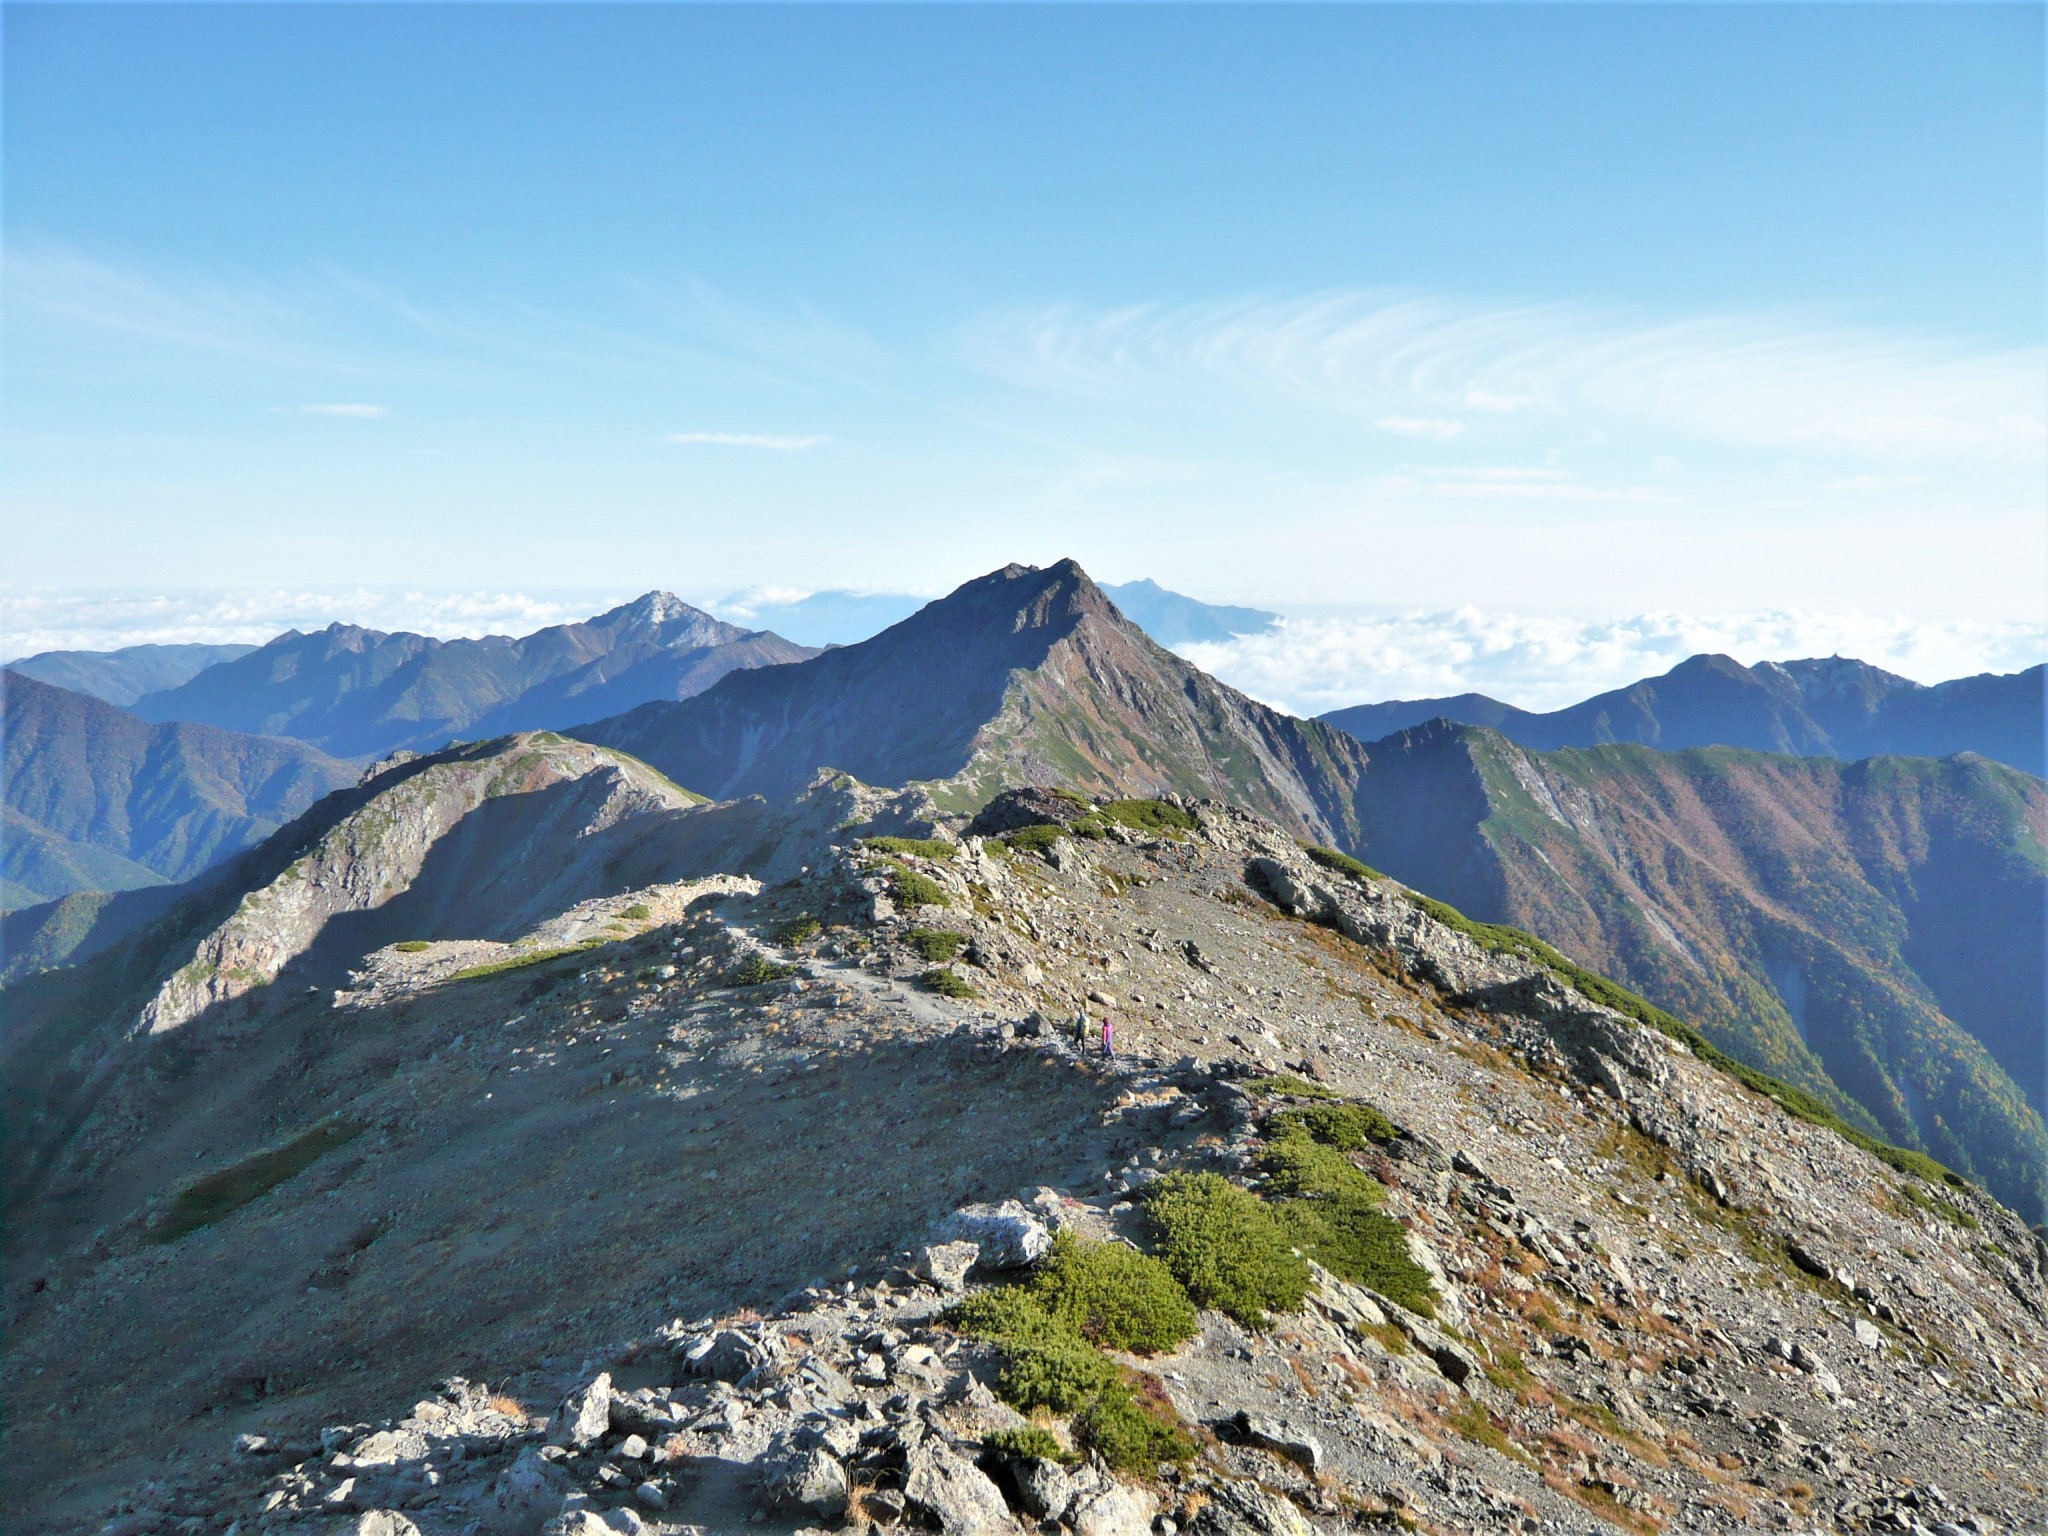 The ridgeline and summit of Mount Kita on a clear morning as seen from the summit of Mount Aino in the Japan Alps.